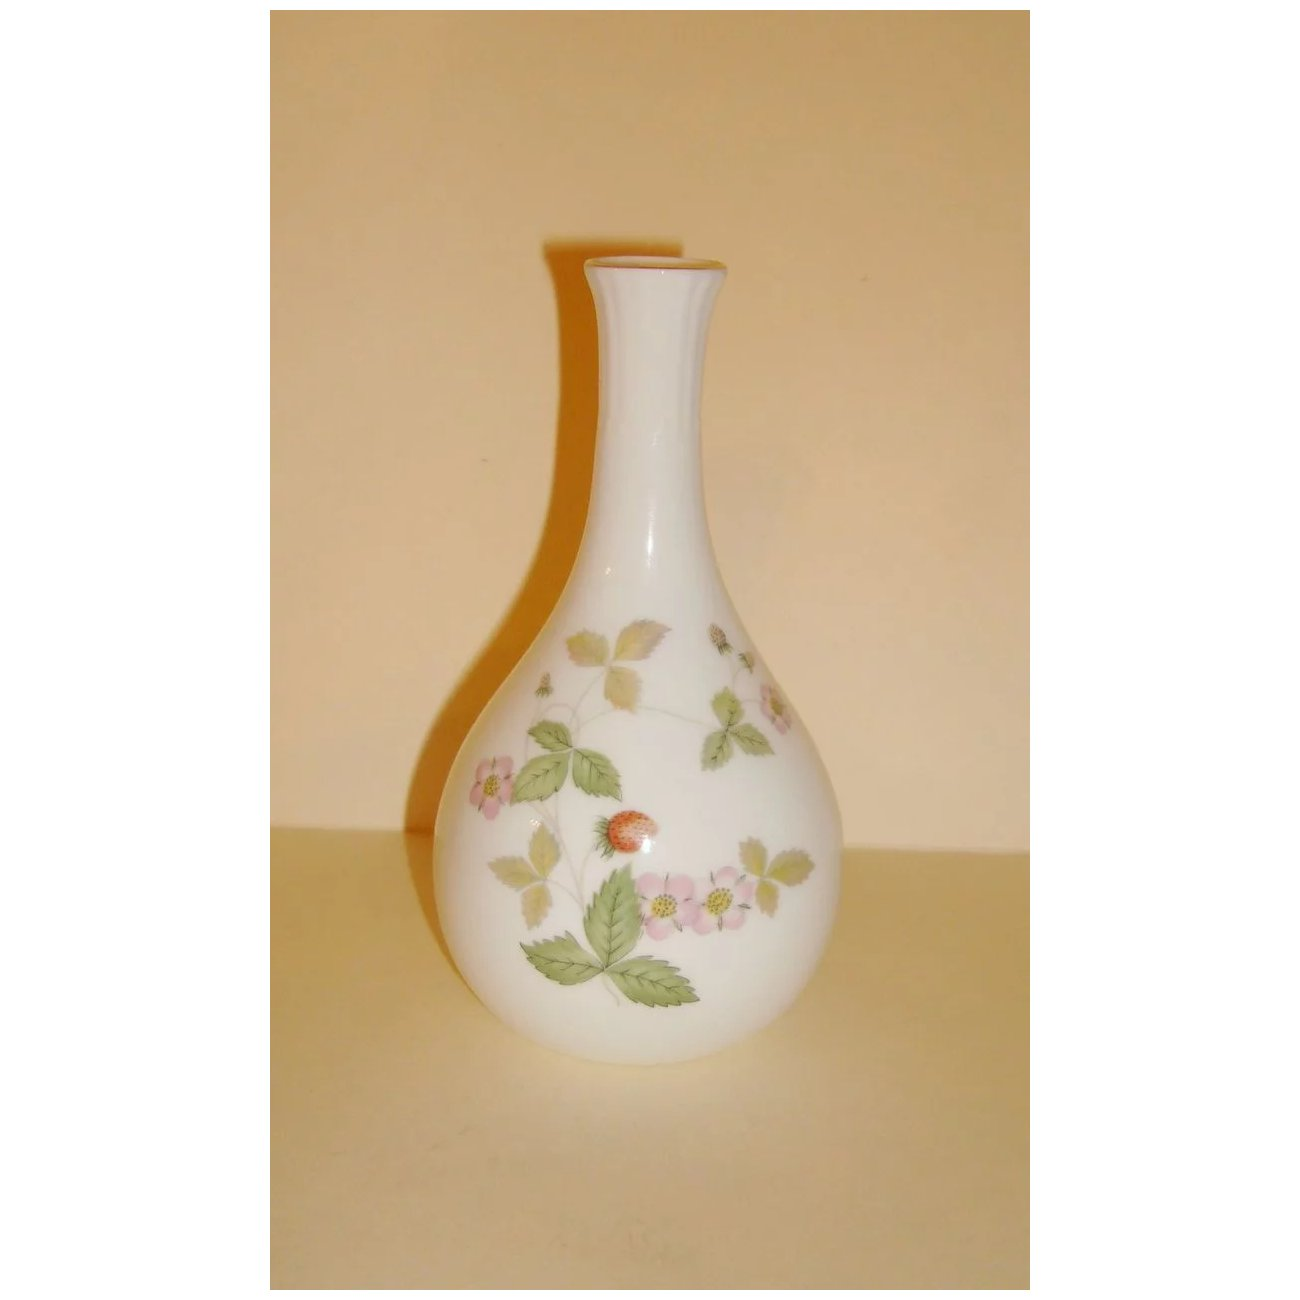 This English Wedgwood Bone China Vase Is Beautifully Decorated With A Strawberry Plant That Goes By The Name Of Wild Measures